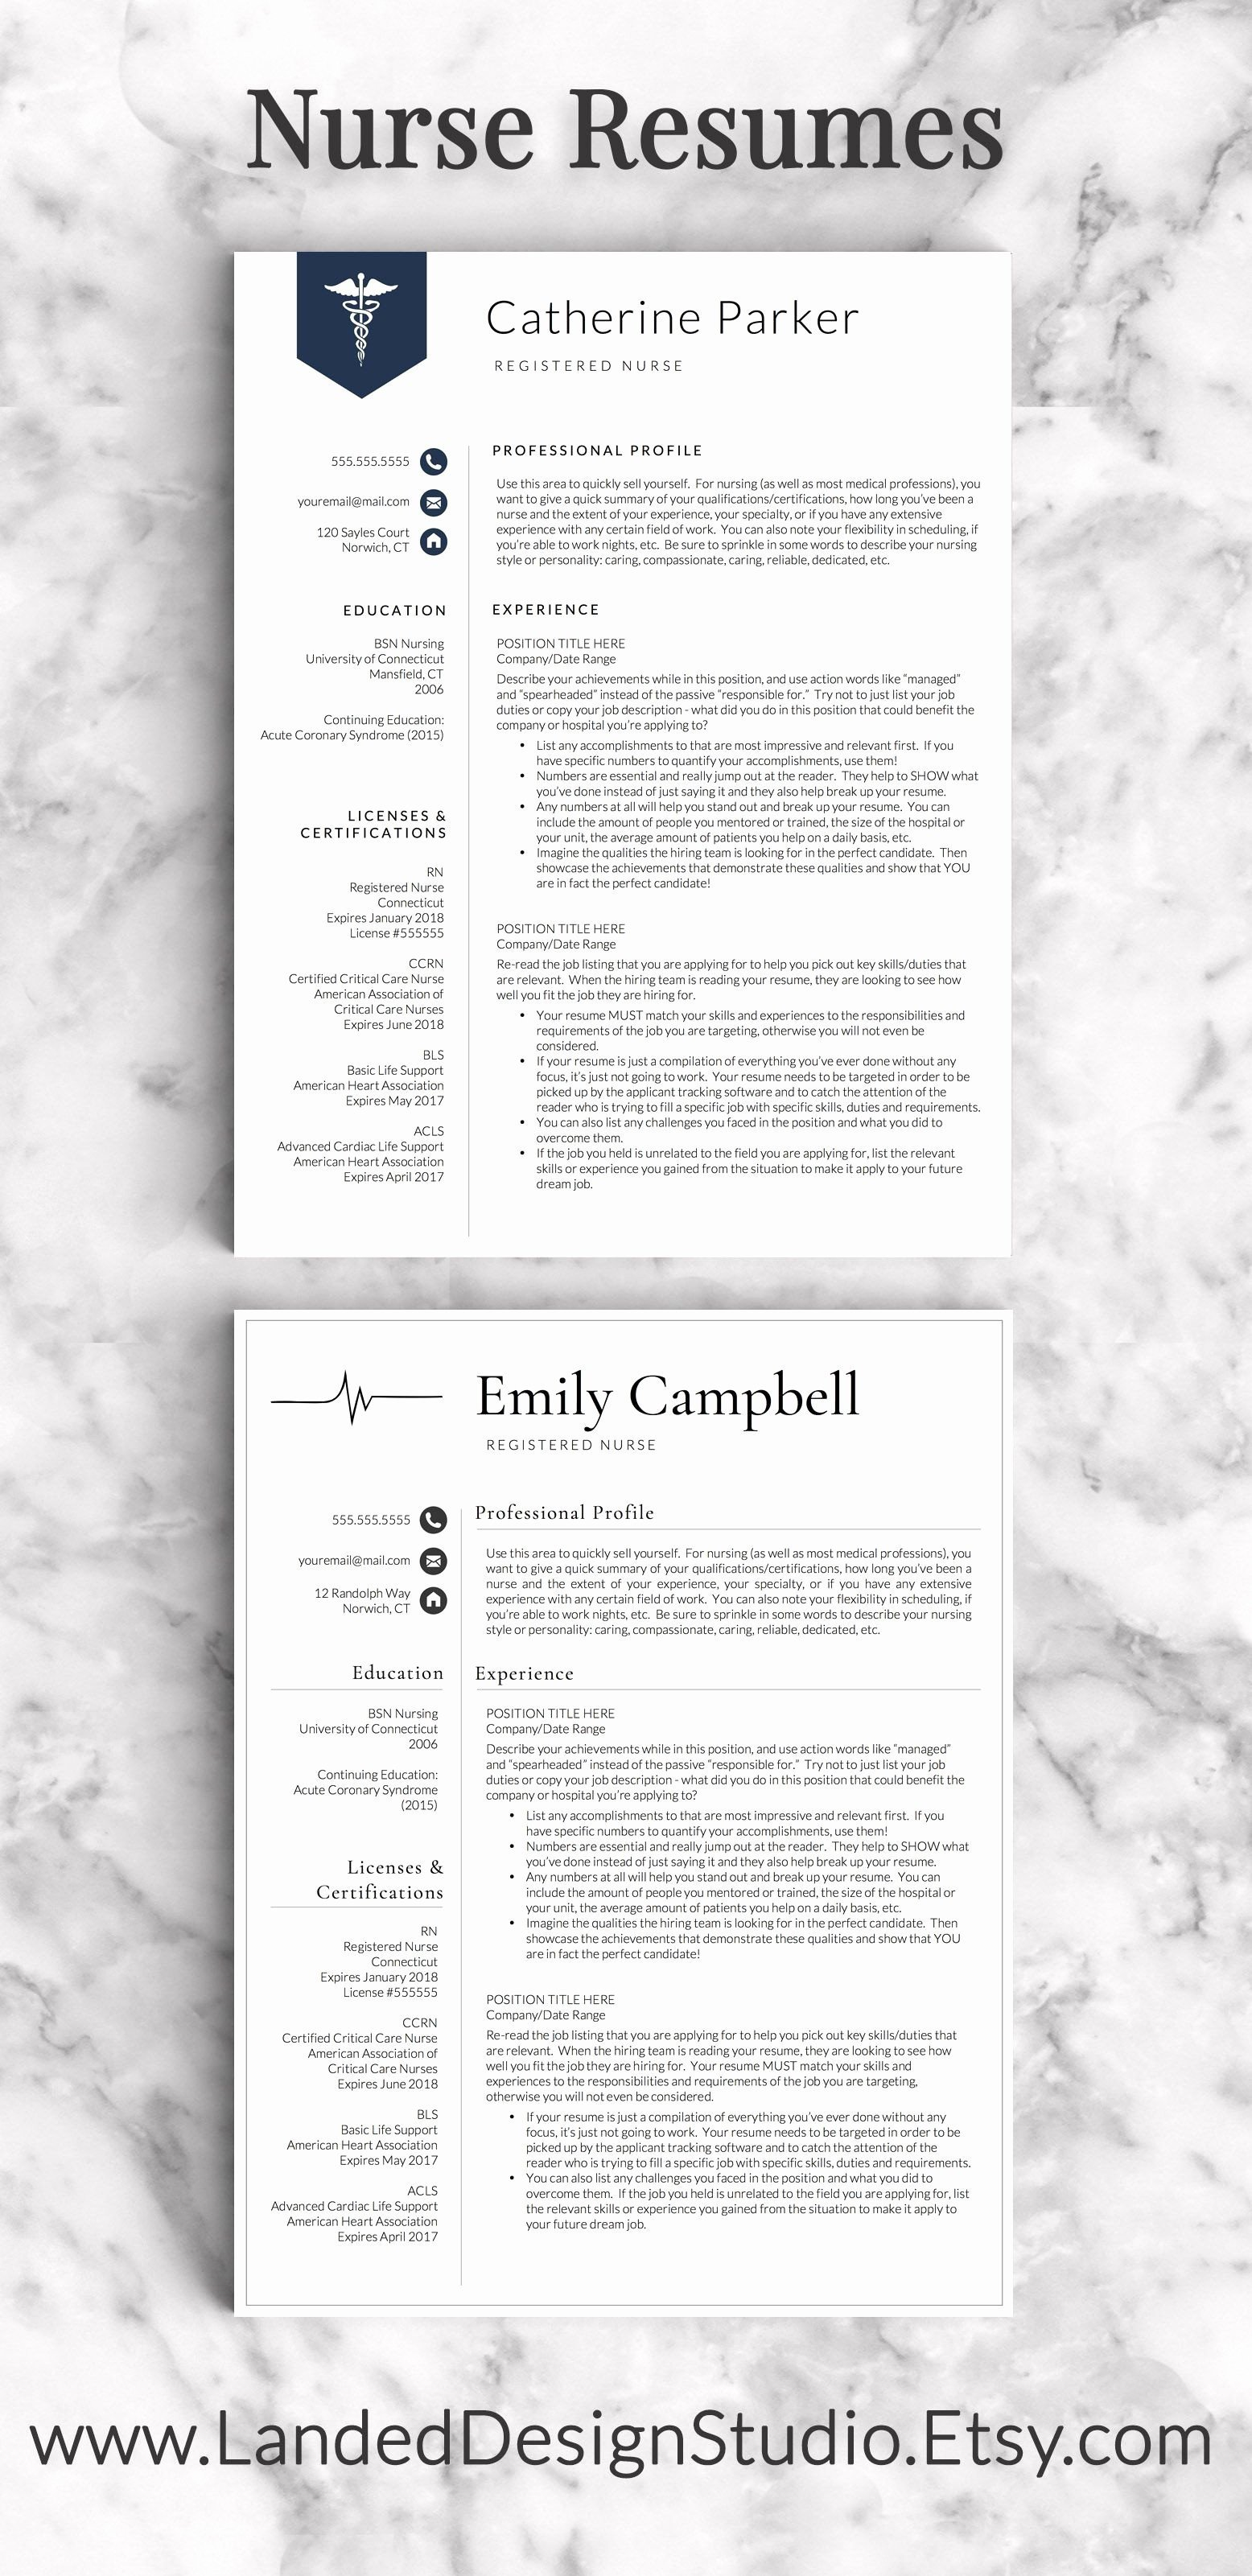 New Grad Nurse Resume New Grad Nursing Resume New Grad Cover Letter Of New Grad Nursing Resume 1 new grad nurse resume|wikiresume.com